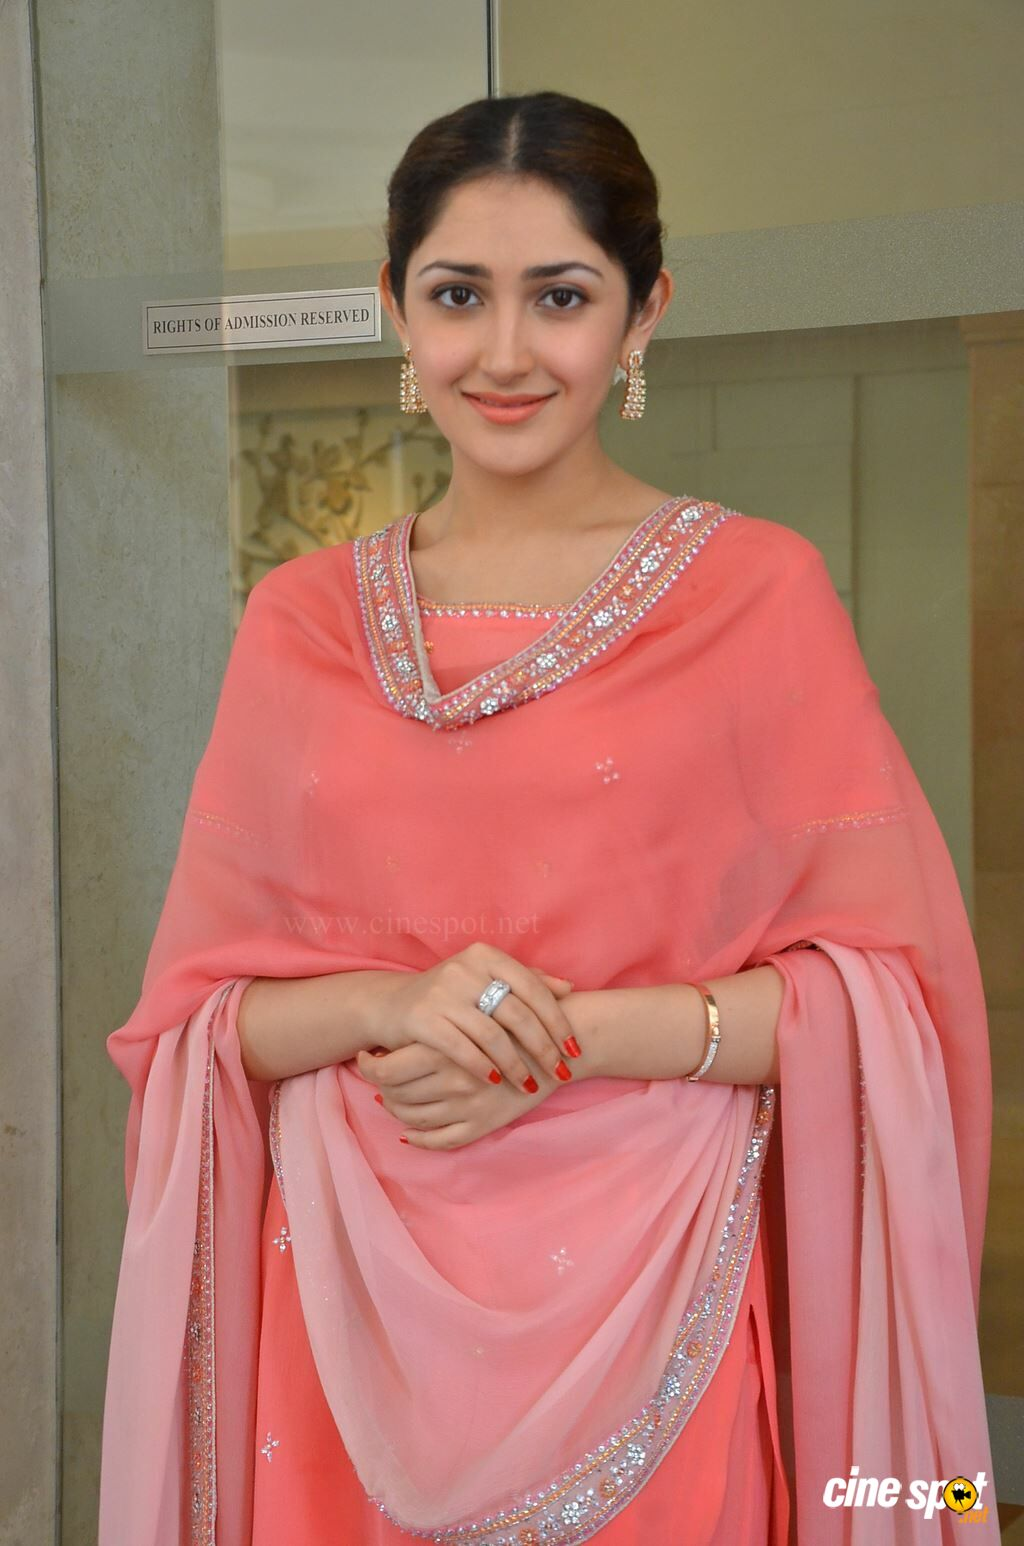 sayesha saigal hd traditional wallpaper